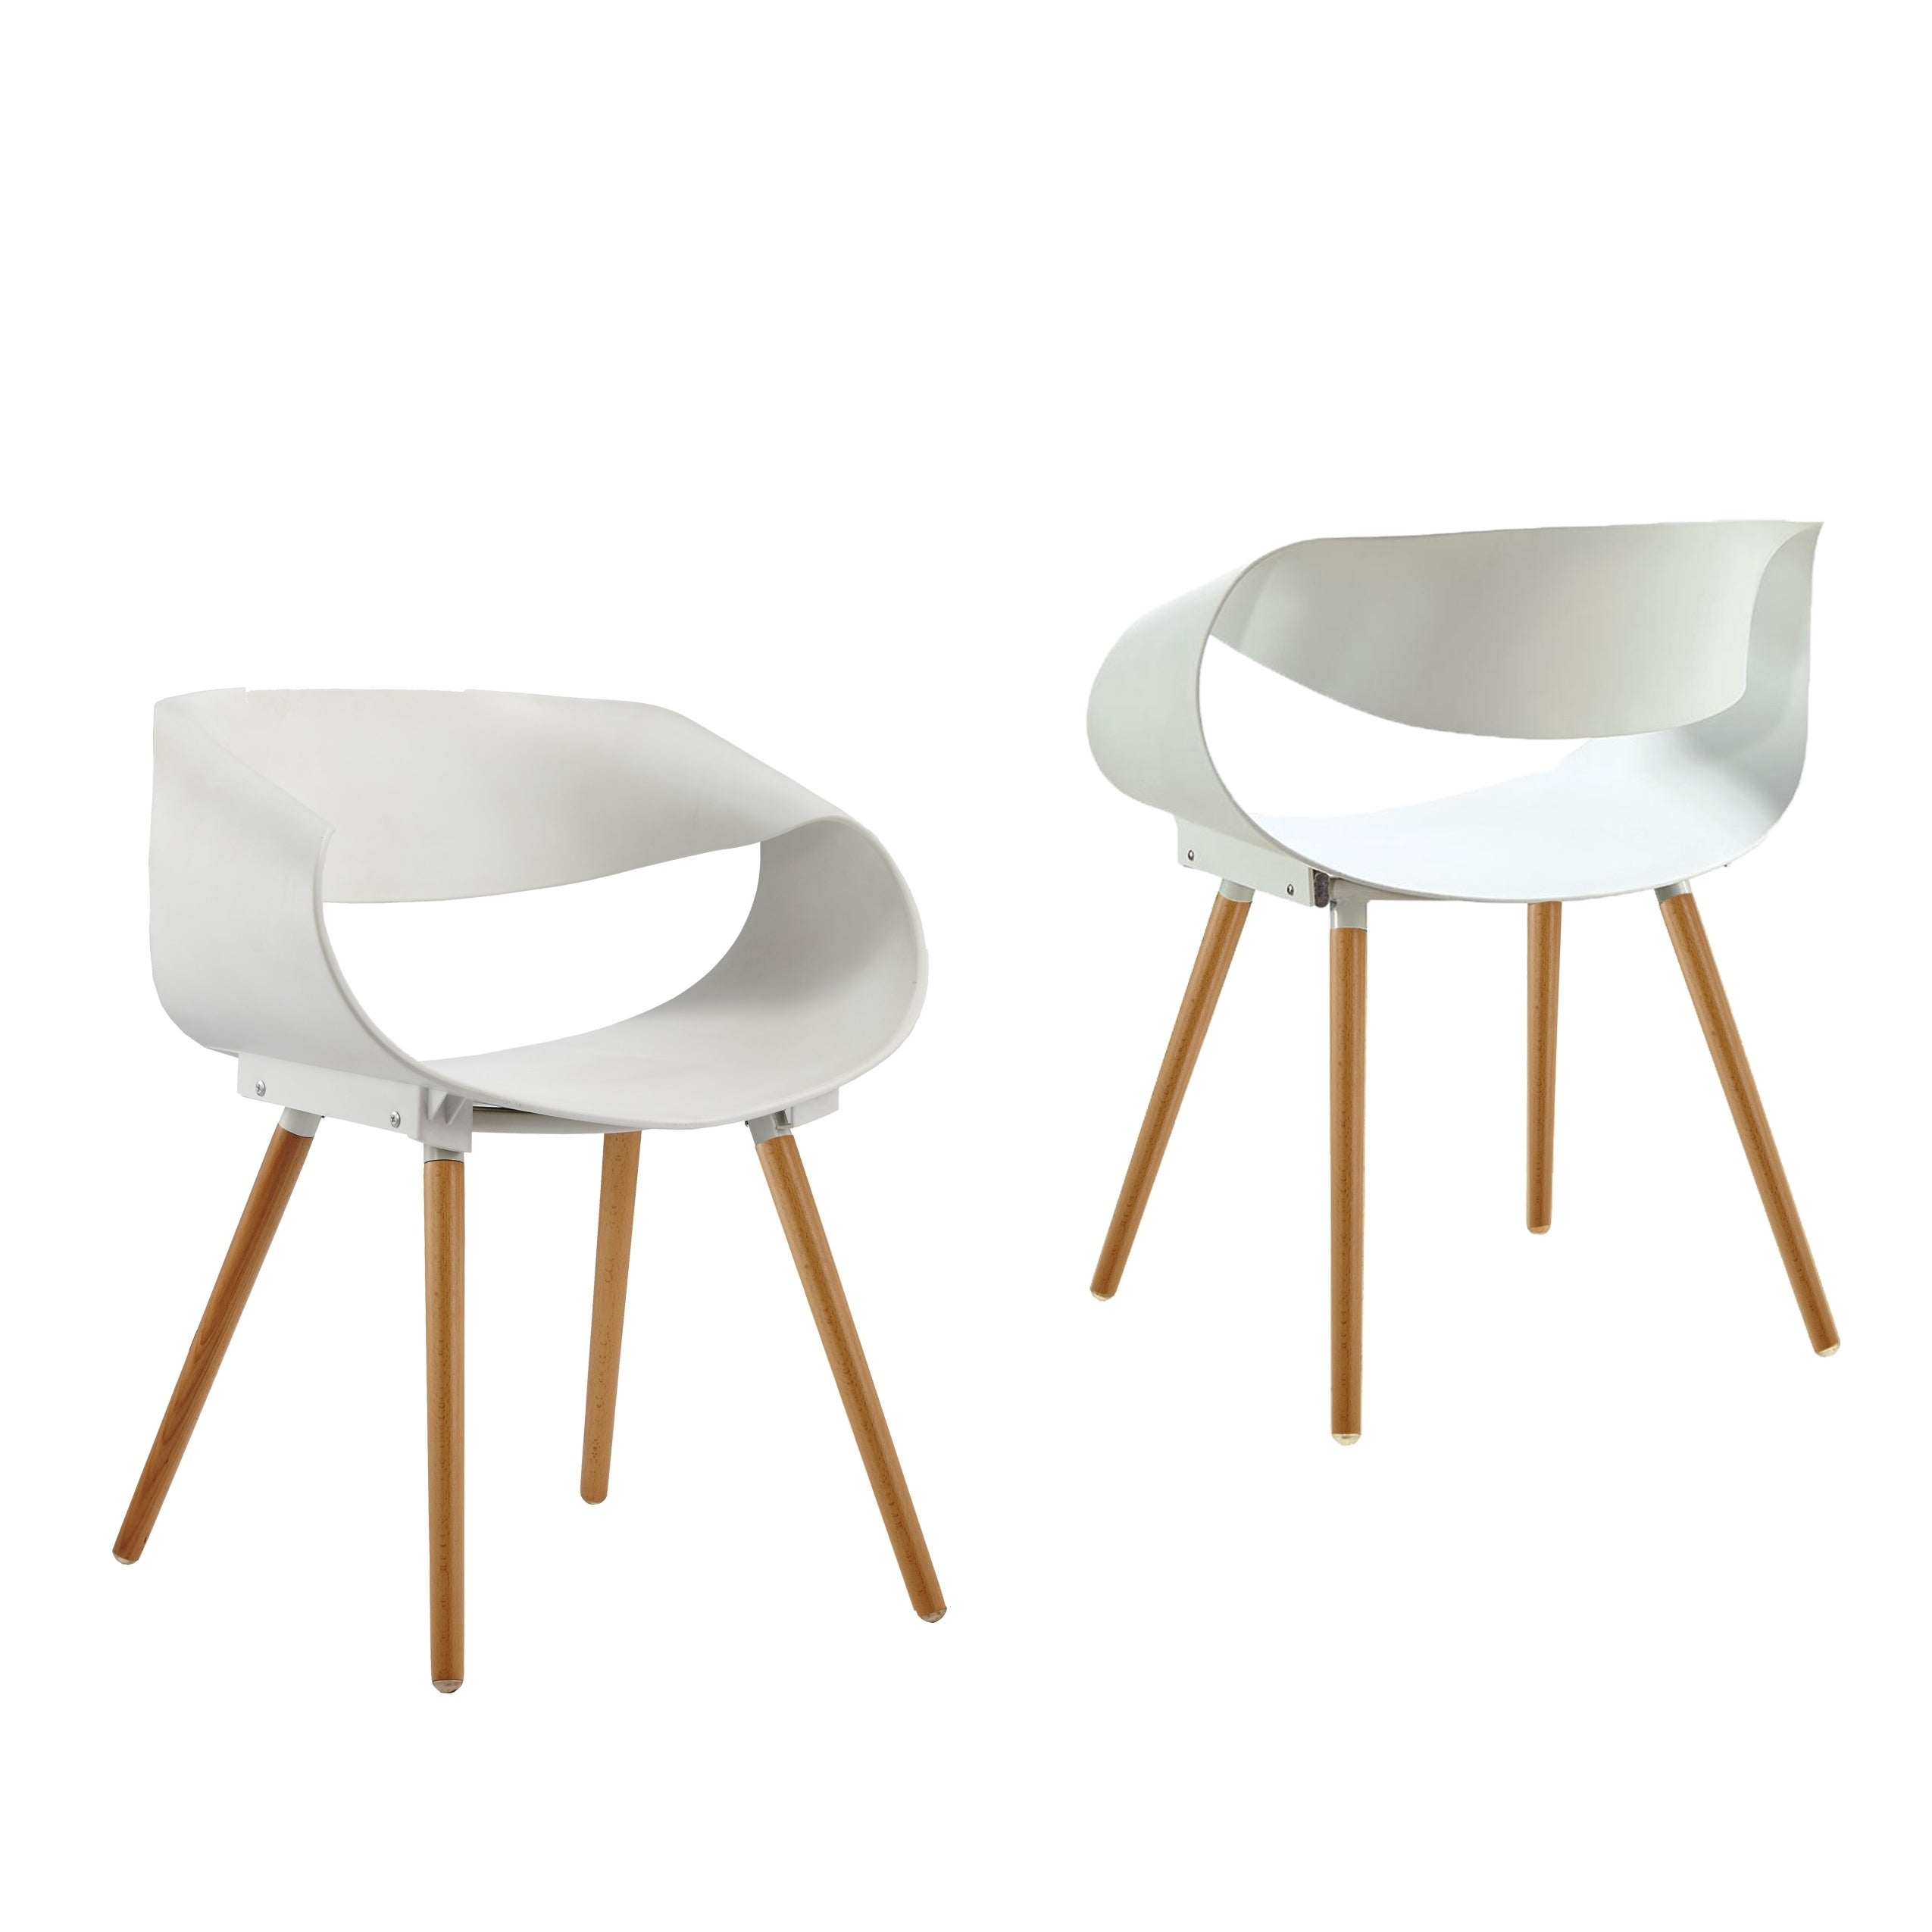 Picture of: Best Master Furniture Mid Century And Modern Side Chairs Set Of 2 Overstock 22824897 Grey